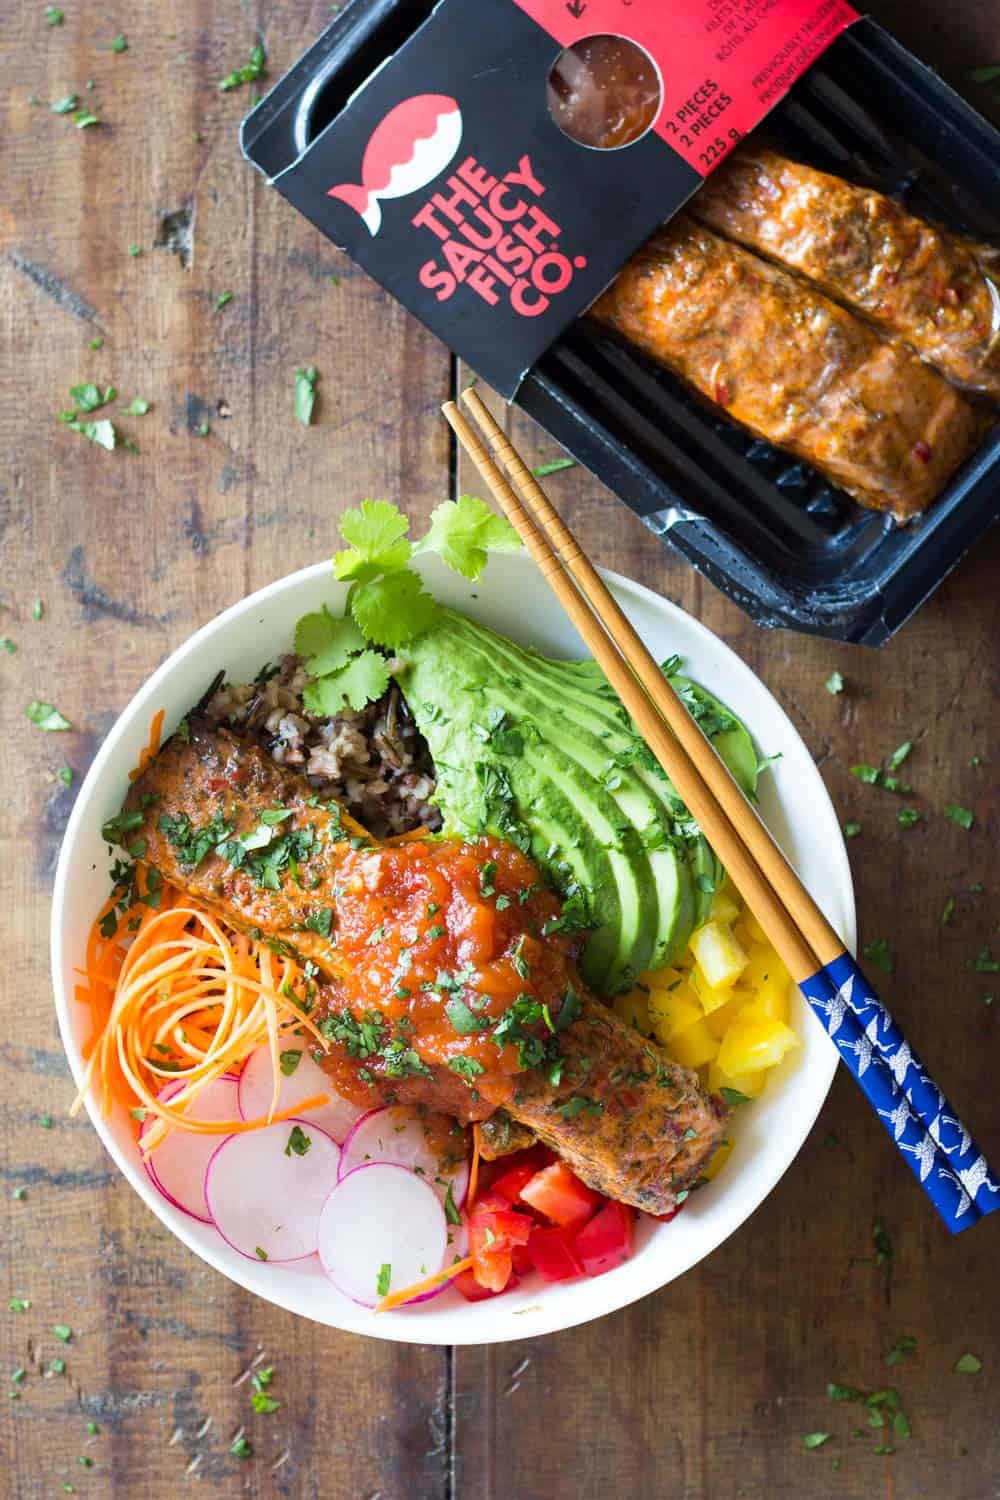 Package of cooked salmon by The Saucy Fish Co. and a bowl of salmon poke salad with avocado, yellow and red pepper, radish, veggie noodles and wild rice, topped with sauce.